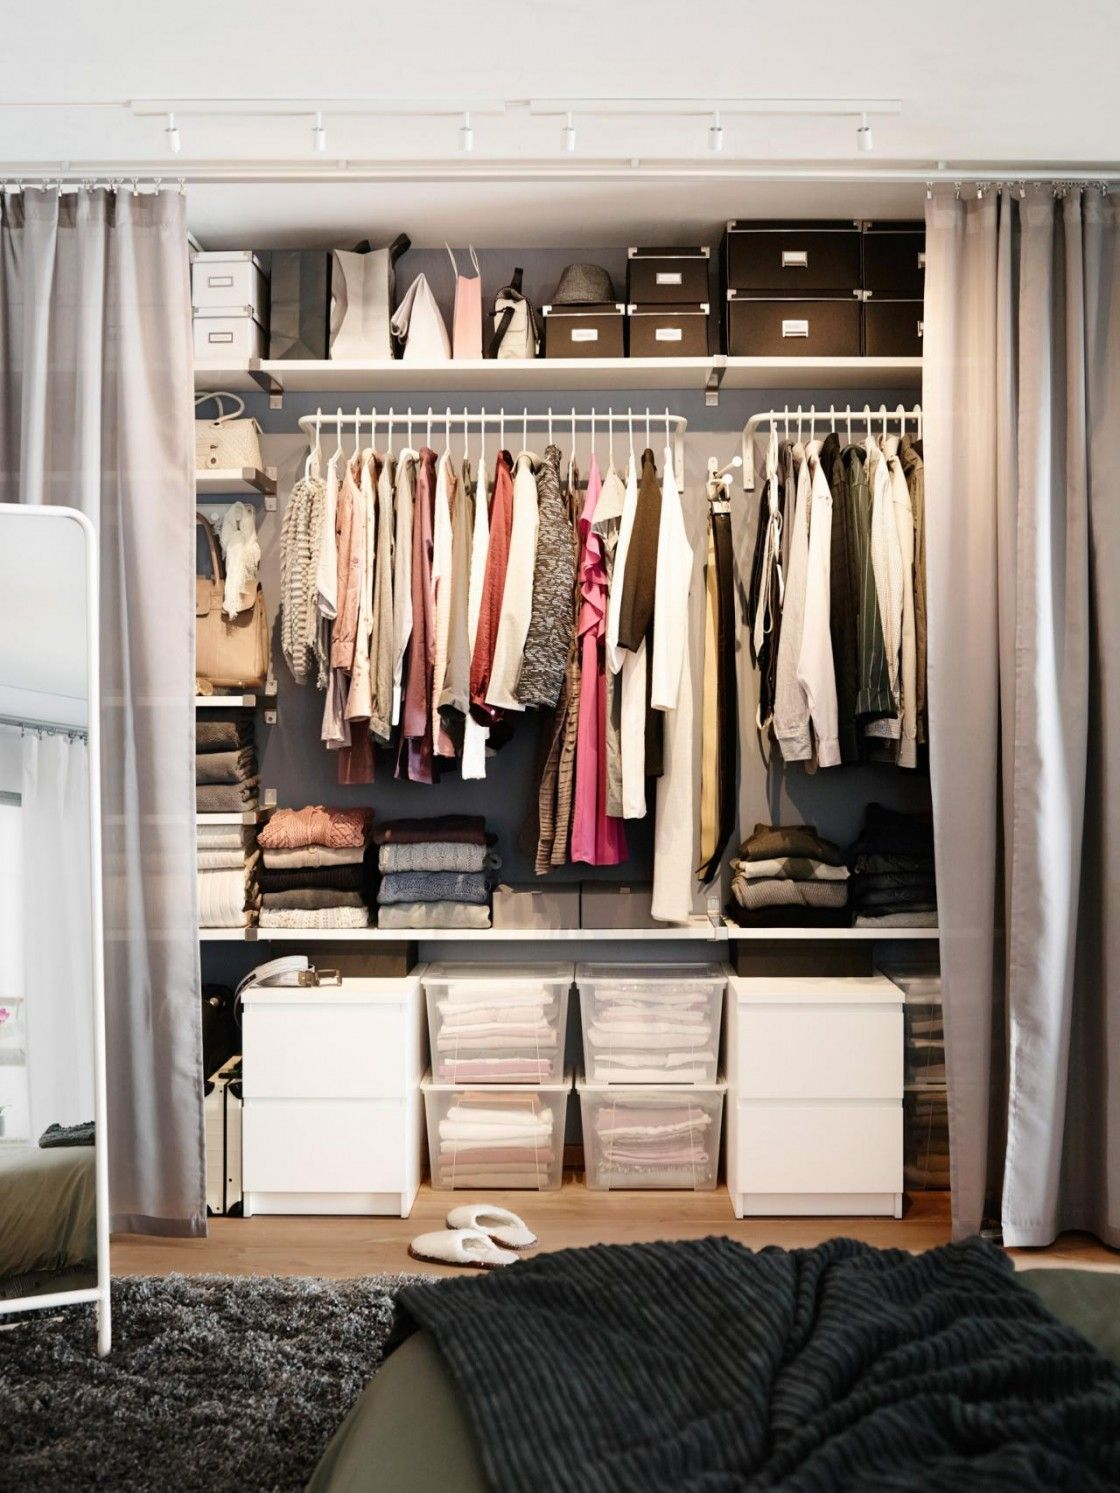 Merveilleux Simple Closet Storage For Small Space Solutions With Lovely Gray Curtain  Closet, Impressive Wardrobe Design For Storage Solutions Small Bedrooms:  Bedroom, ...